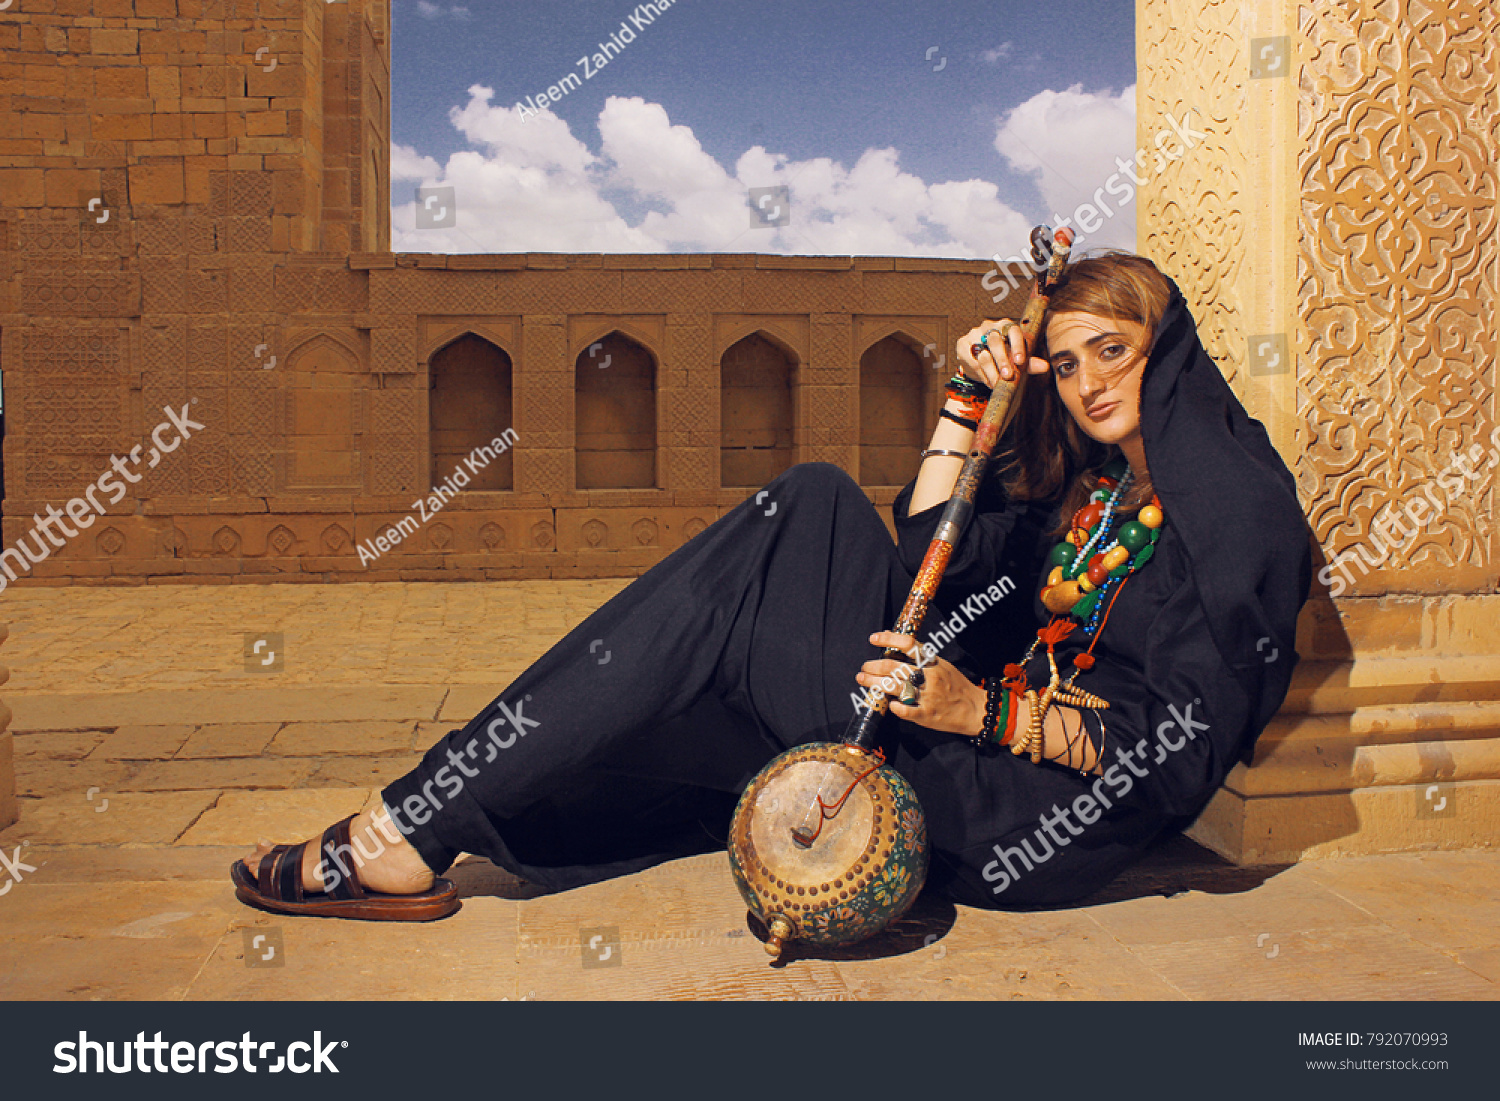 Fasihion Editorials Images Stock Photos Vectors Shutterstock